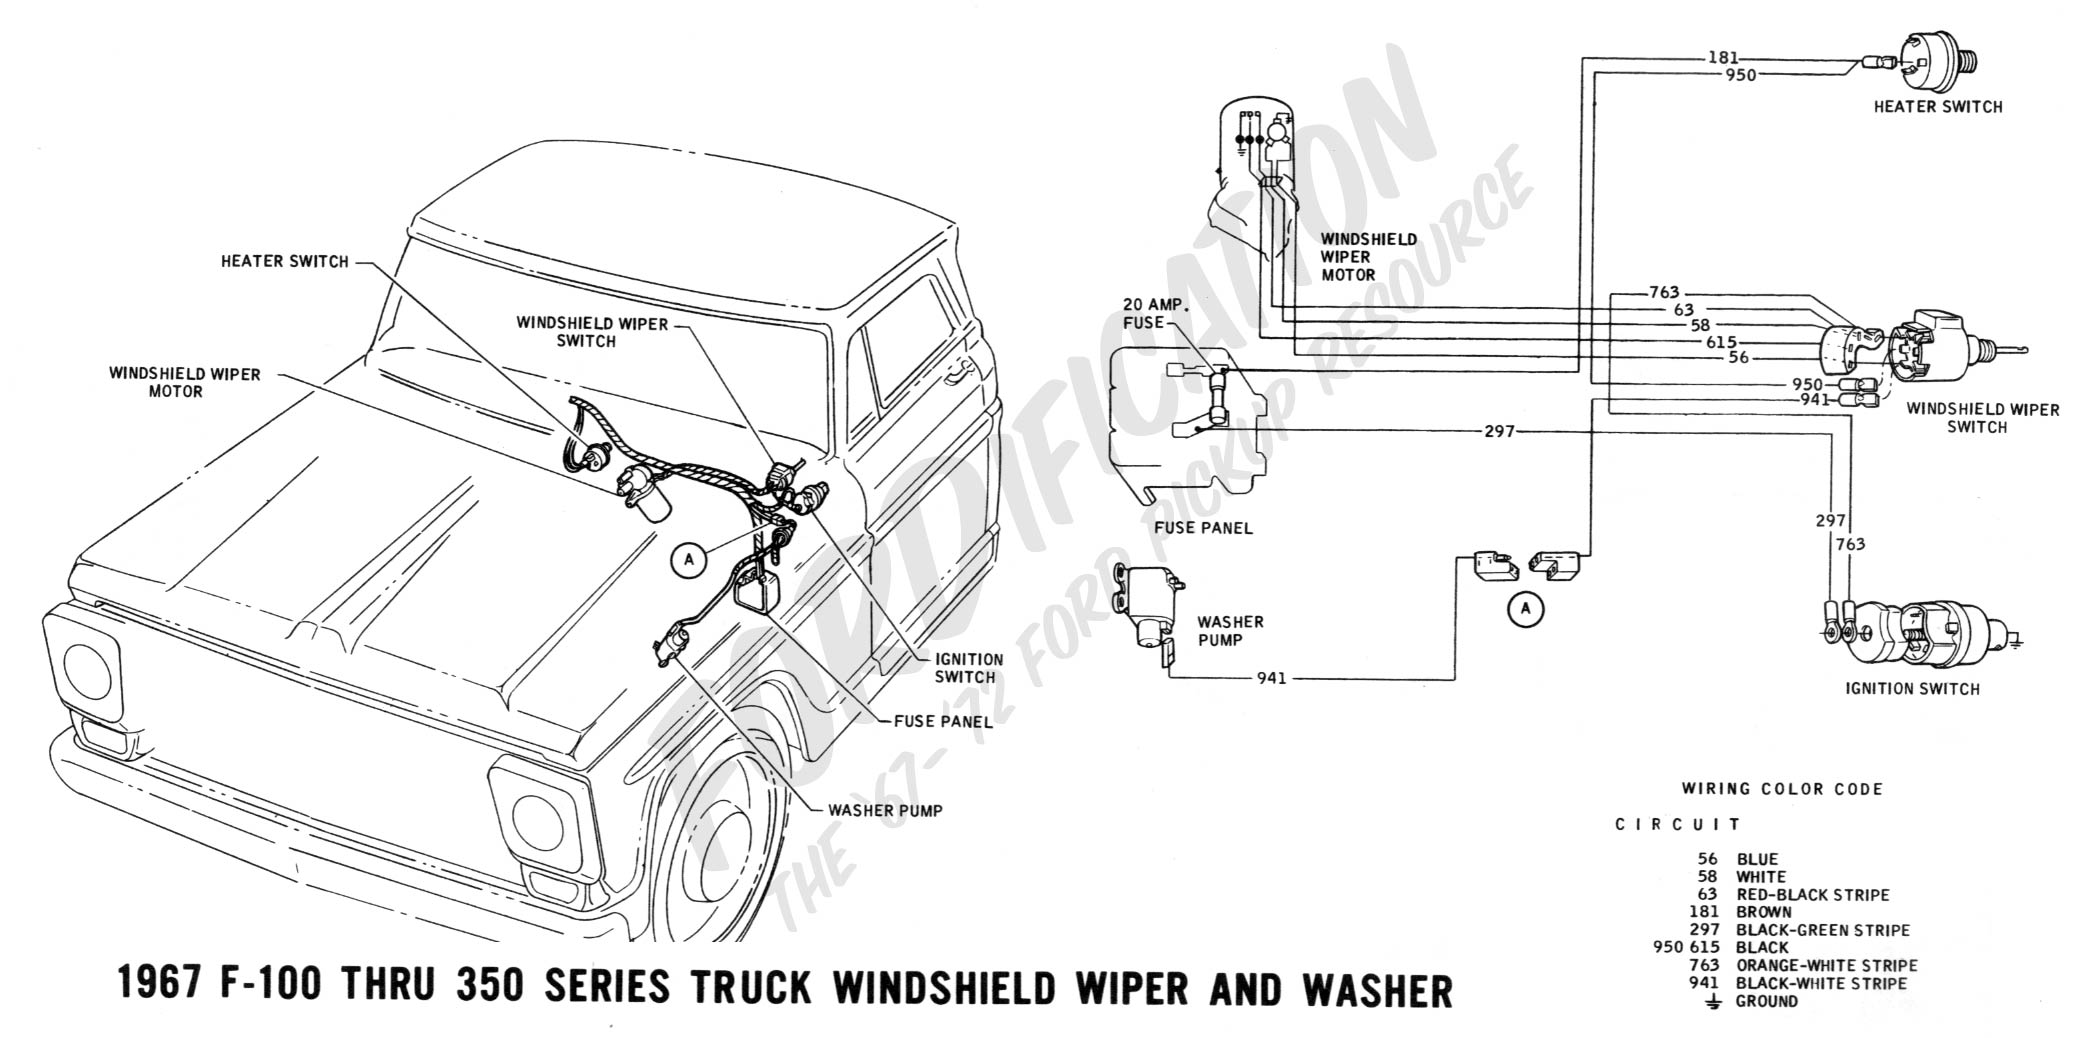 wiring 1967wipers ford truck technical drawings and schematics section h wiring 1999 ford explorer rear wiper wiring diagram at nearapp.co